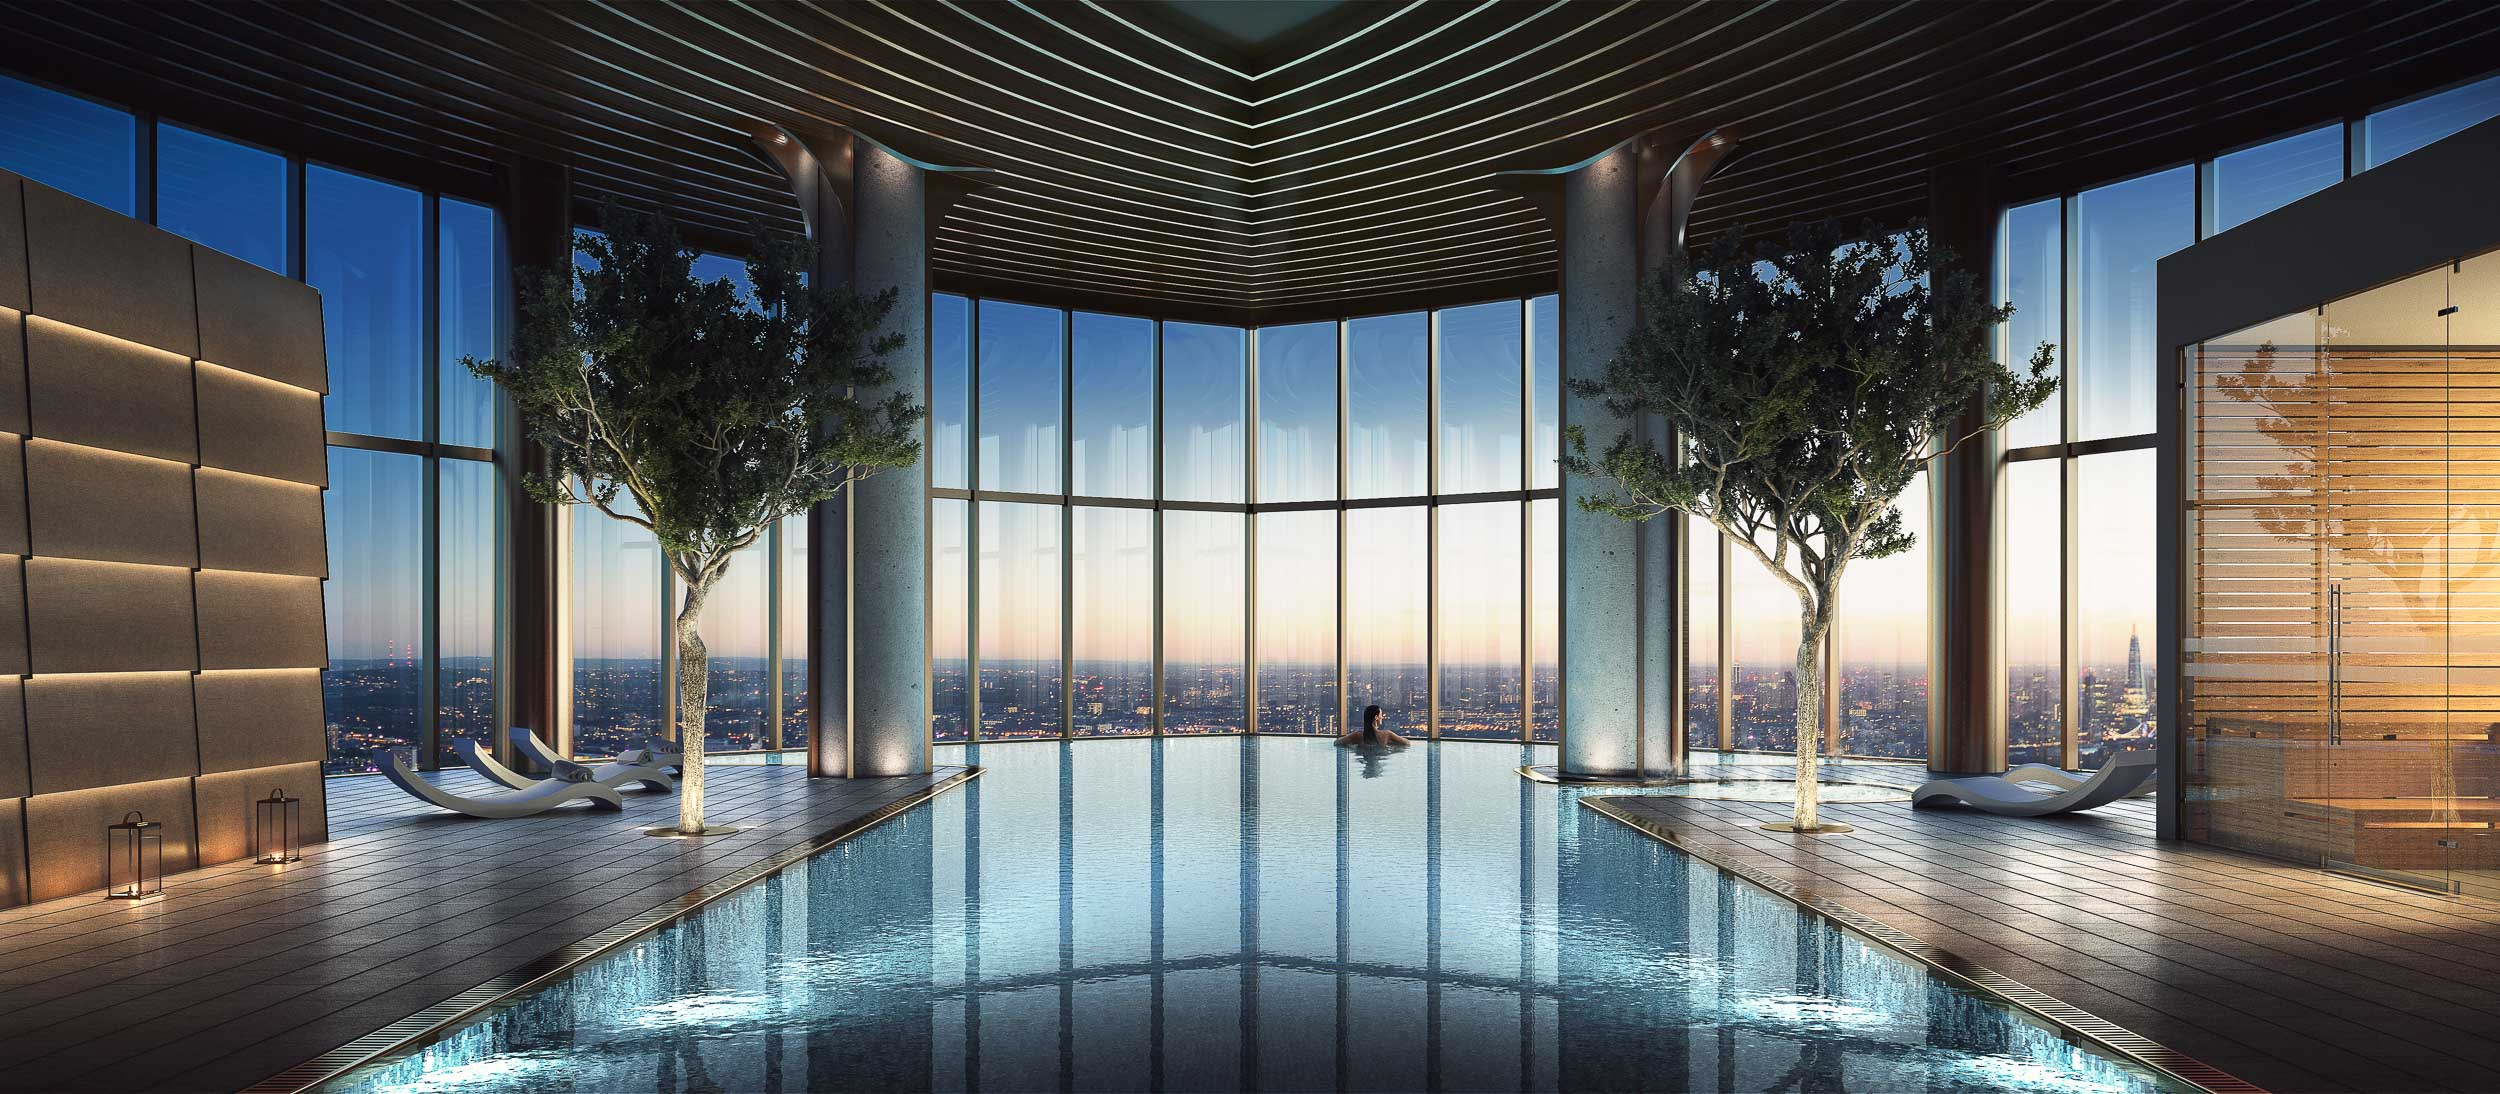 The infinity edge pool on the 35th floor. The pool has a steam room, sauna and jacuzzi all with panoramic views over the docklands and east London